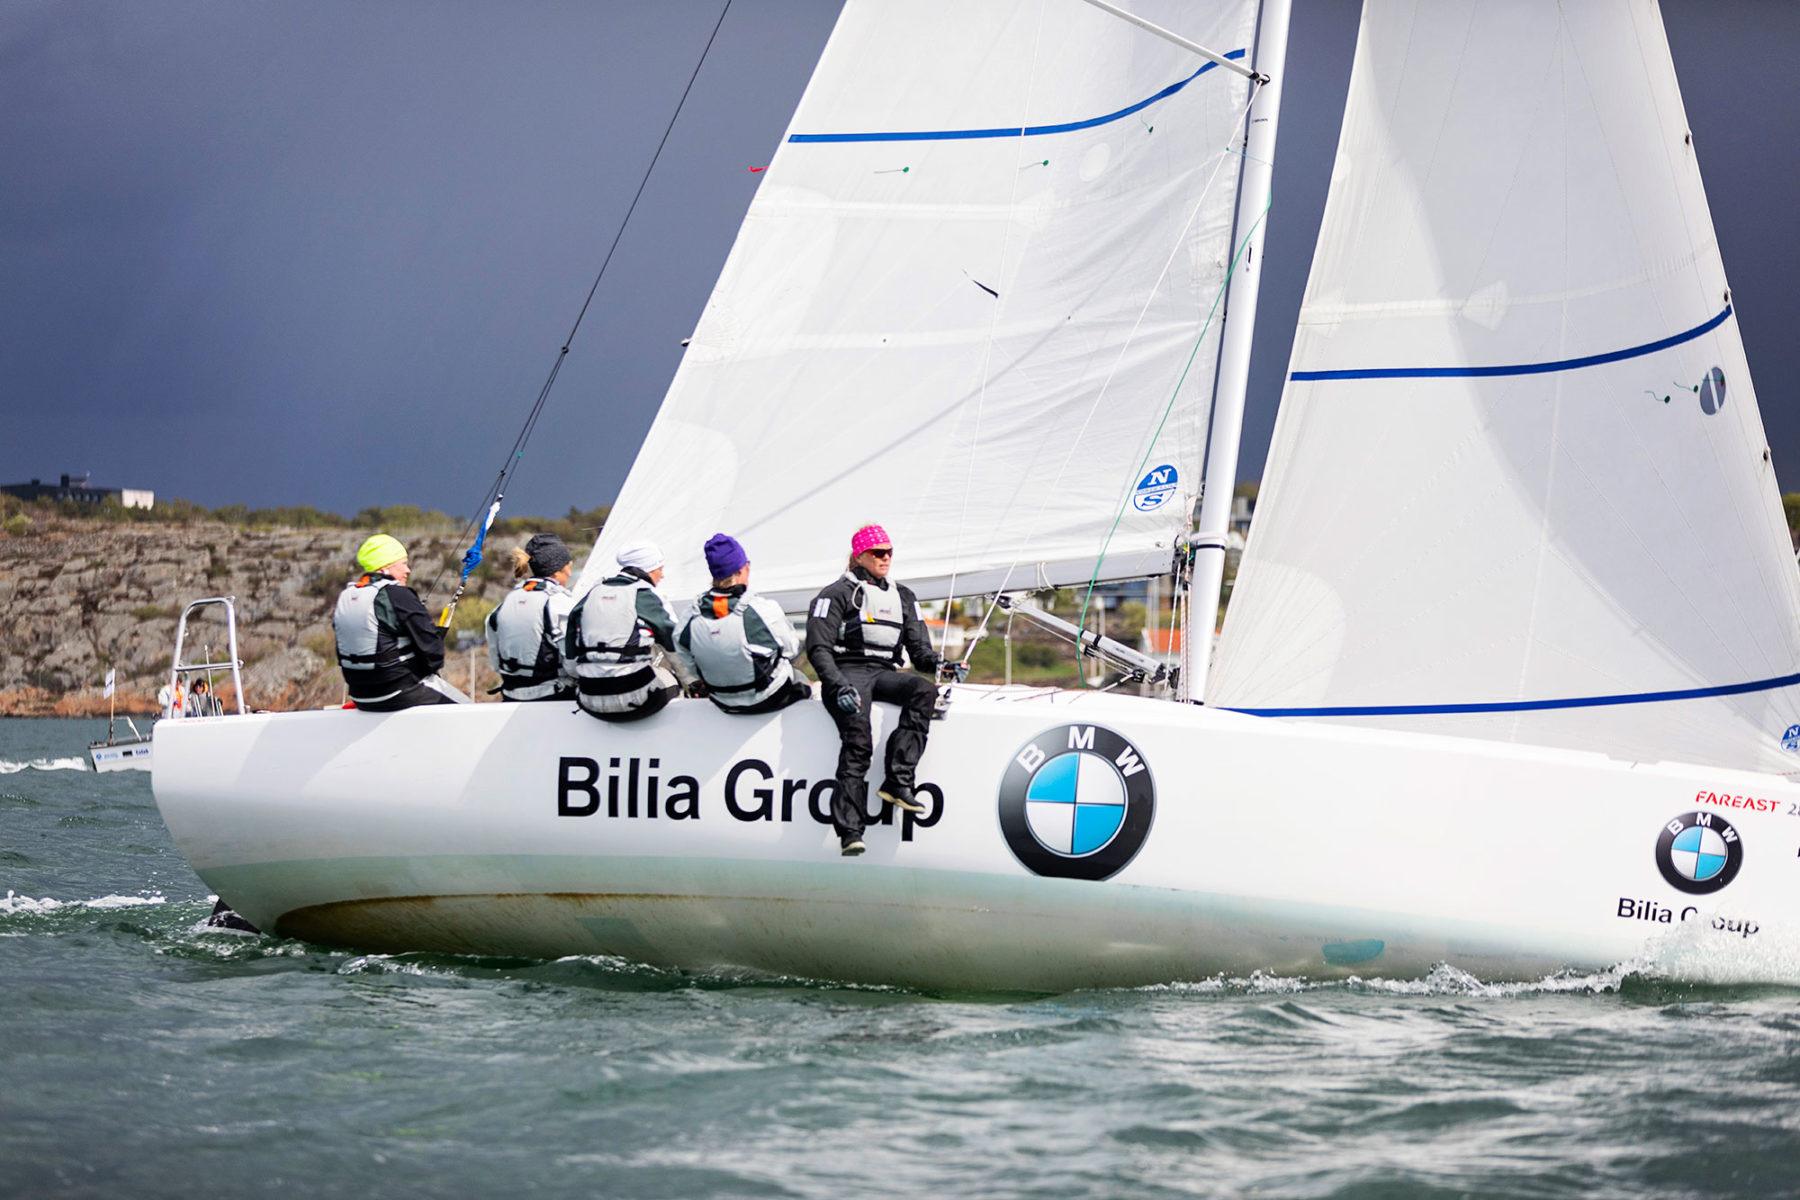 Leroy And Björling Duell Win Qualifier For World